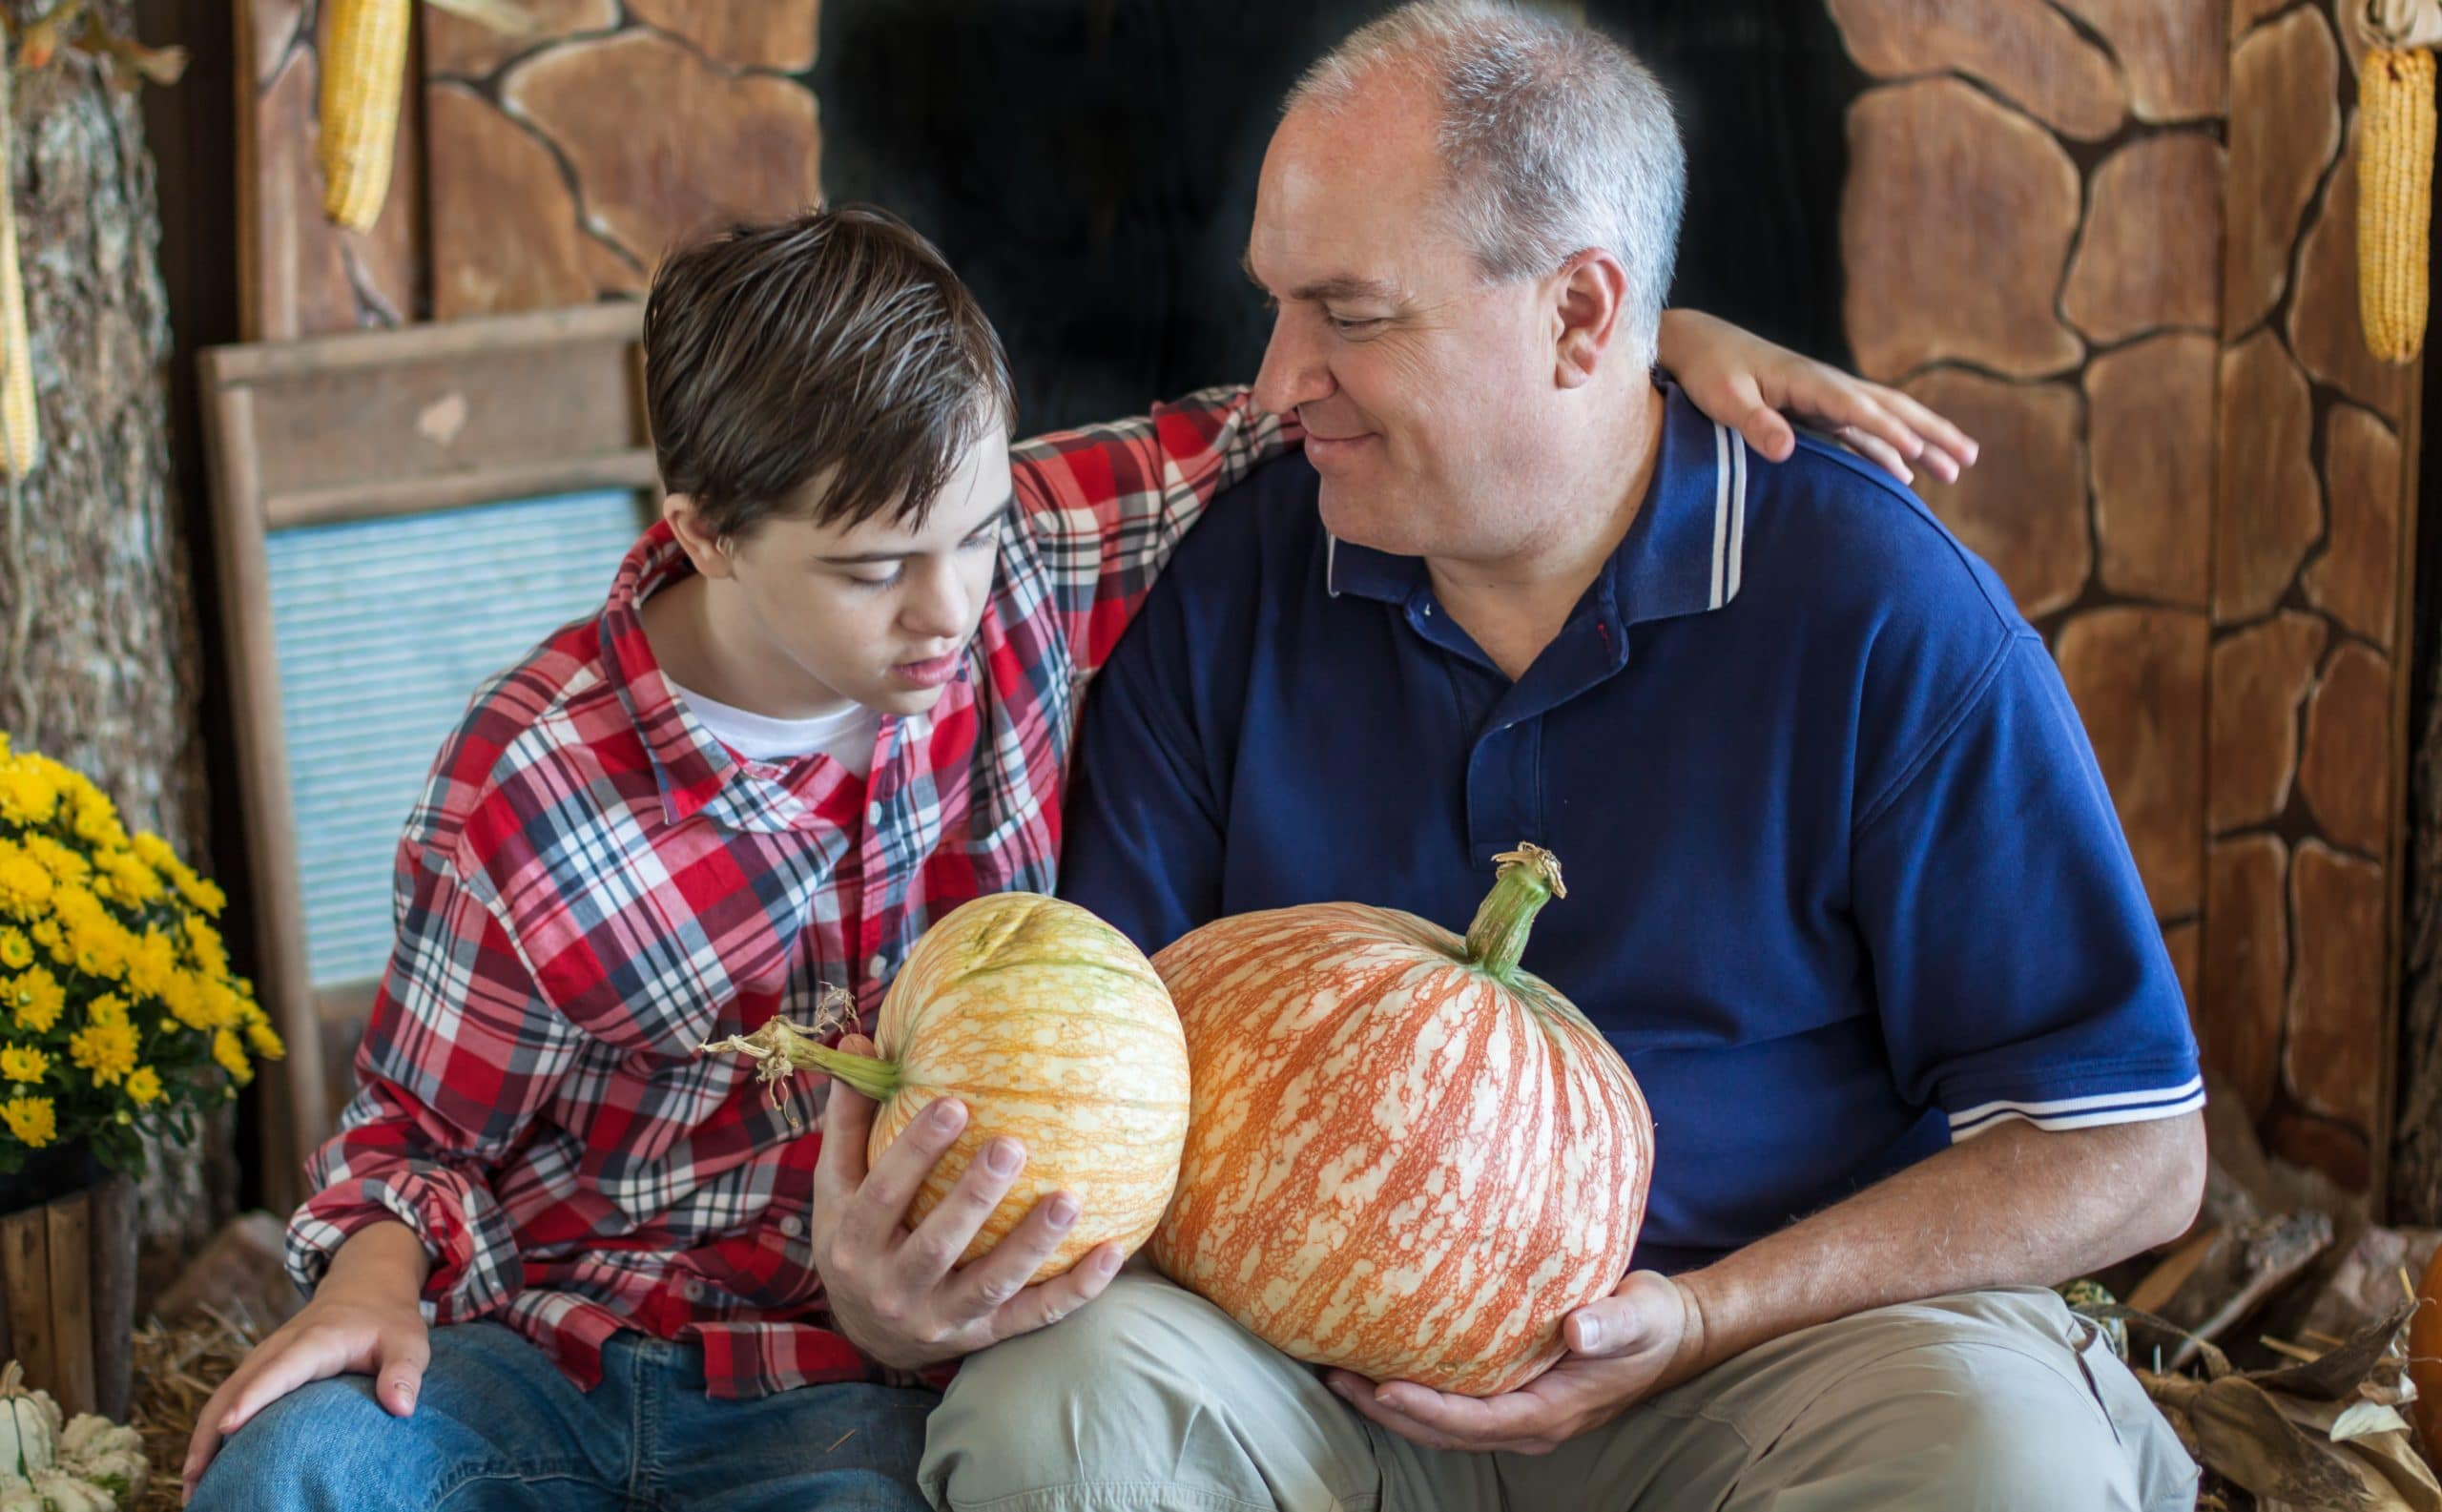 Boy with Autism Holding Pumpkins with his Grandfather